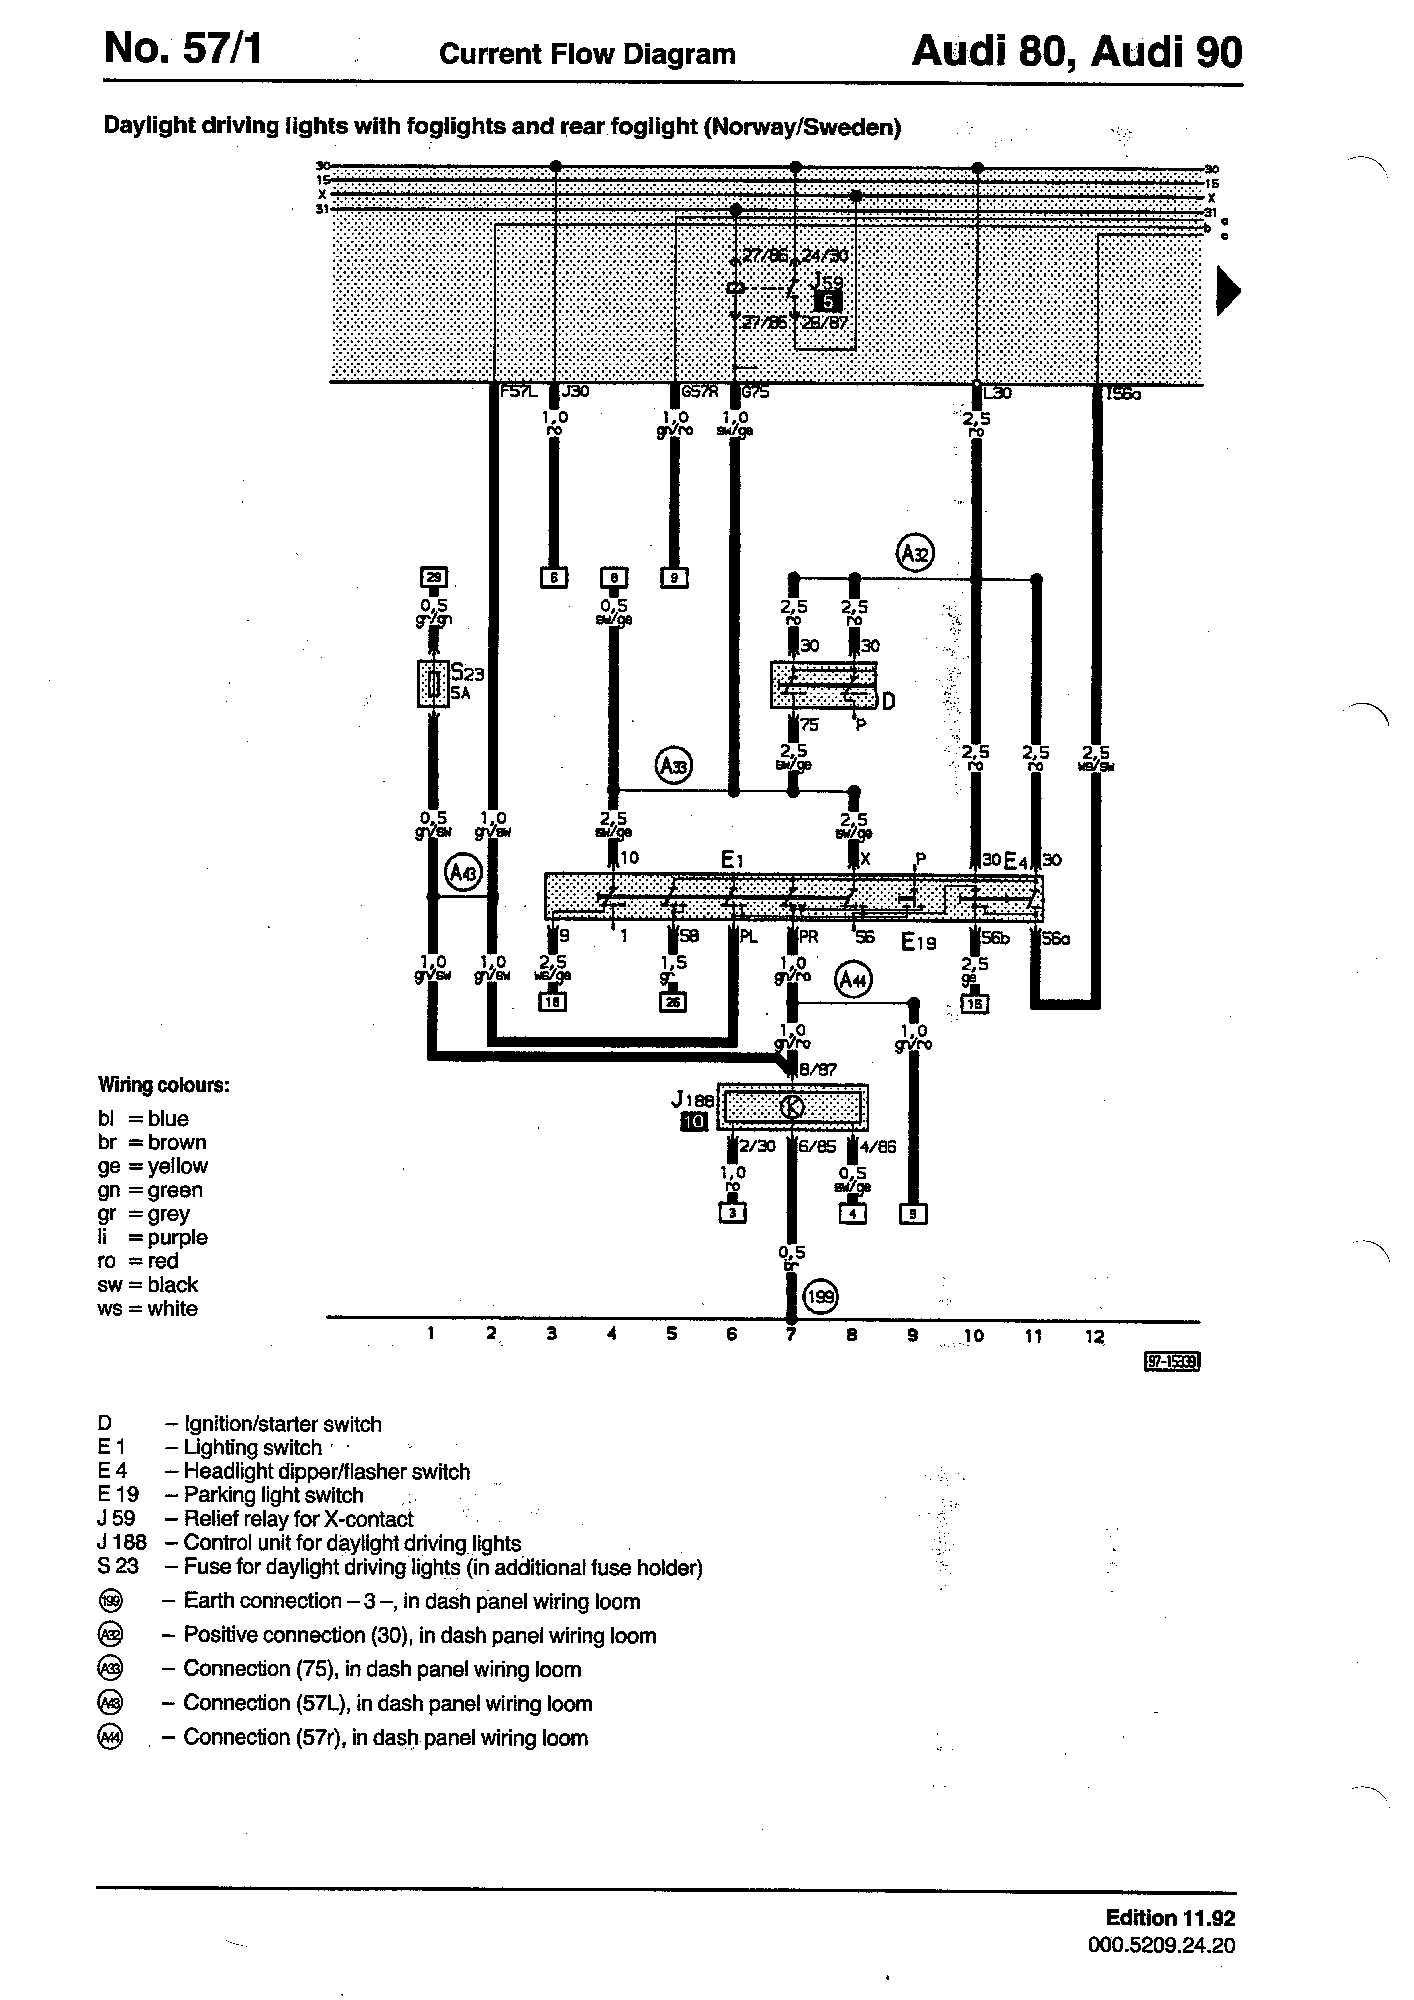 Wiring Diagrams Component Lookup Hydro 84 Ignition Diagram Parking Light Switch E19